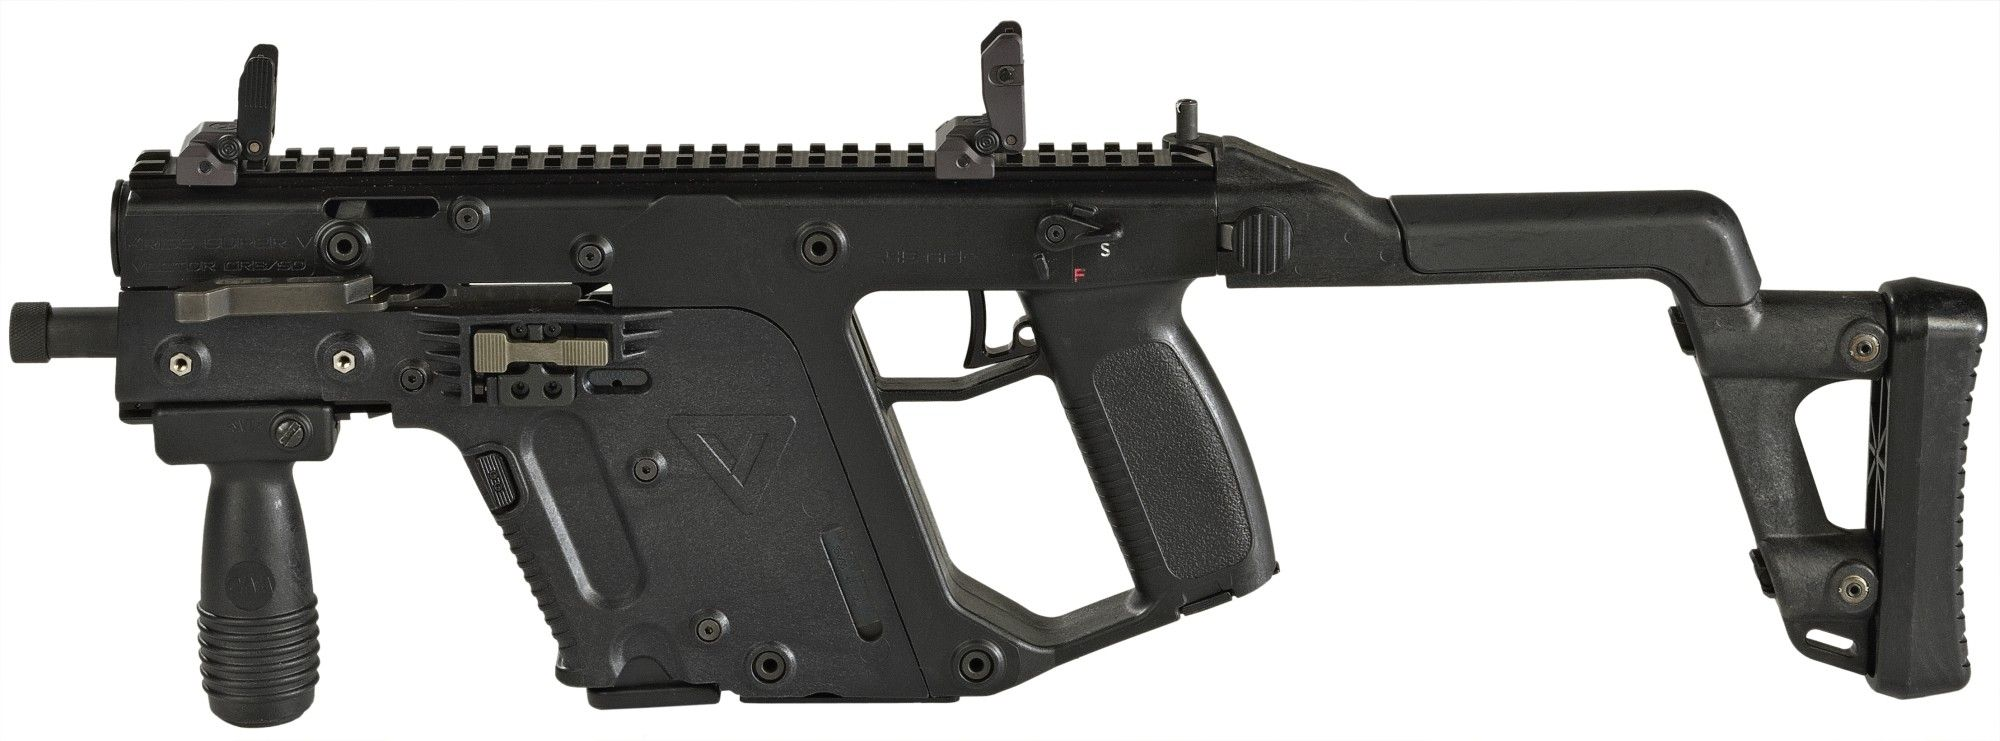 the kriss smg low recoil on 45 acp makes this a decent battle rifle rh pinterest co uk kriss vector assault rifle vector clip art assault rifle